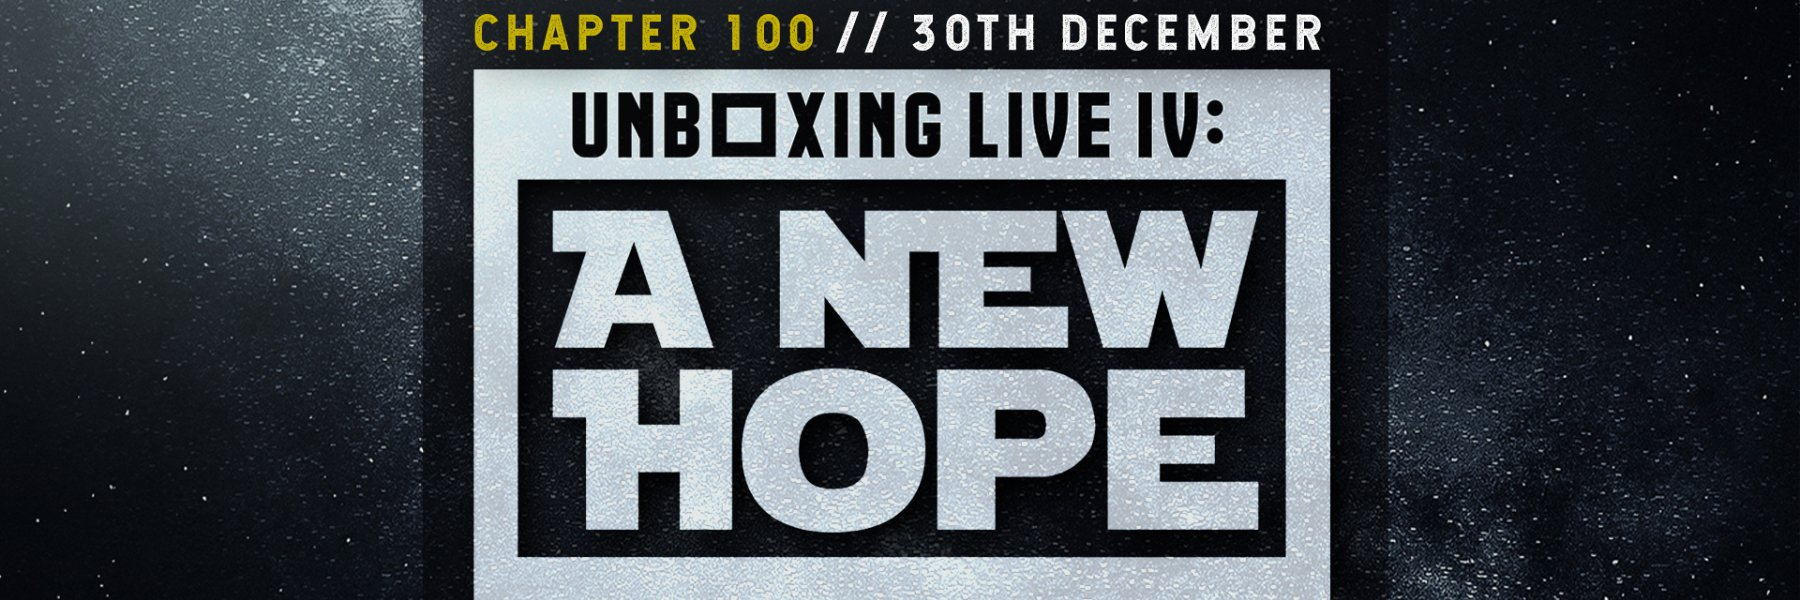 NEW - Chapter 100: Unboxing Live IV: A New Hope